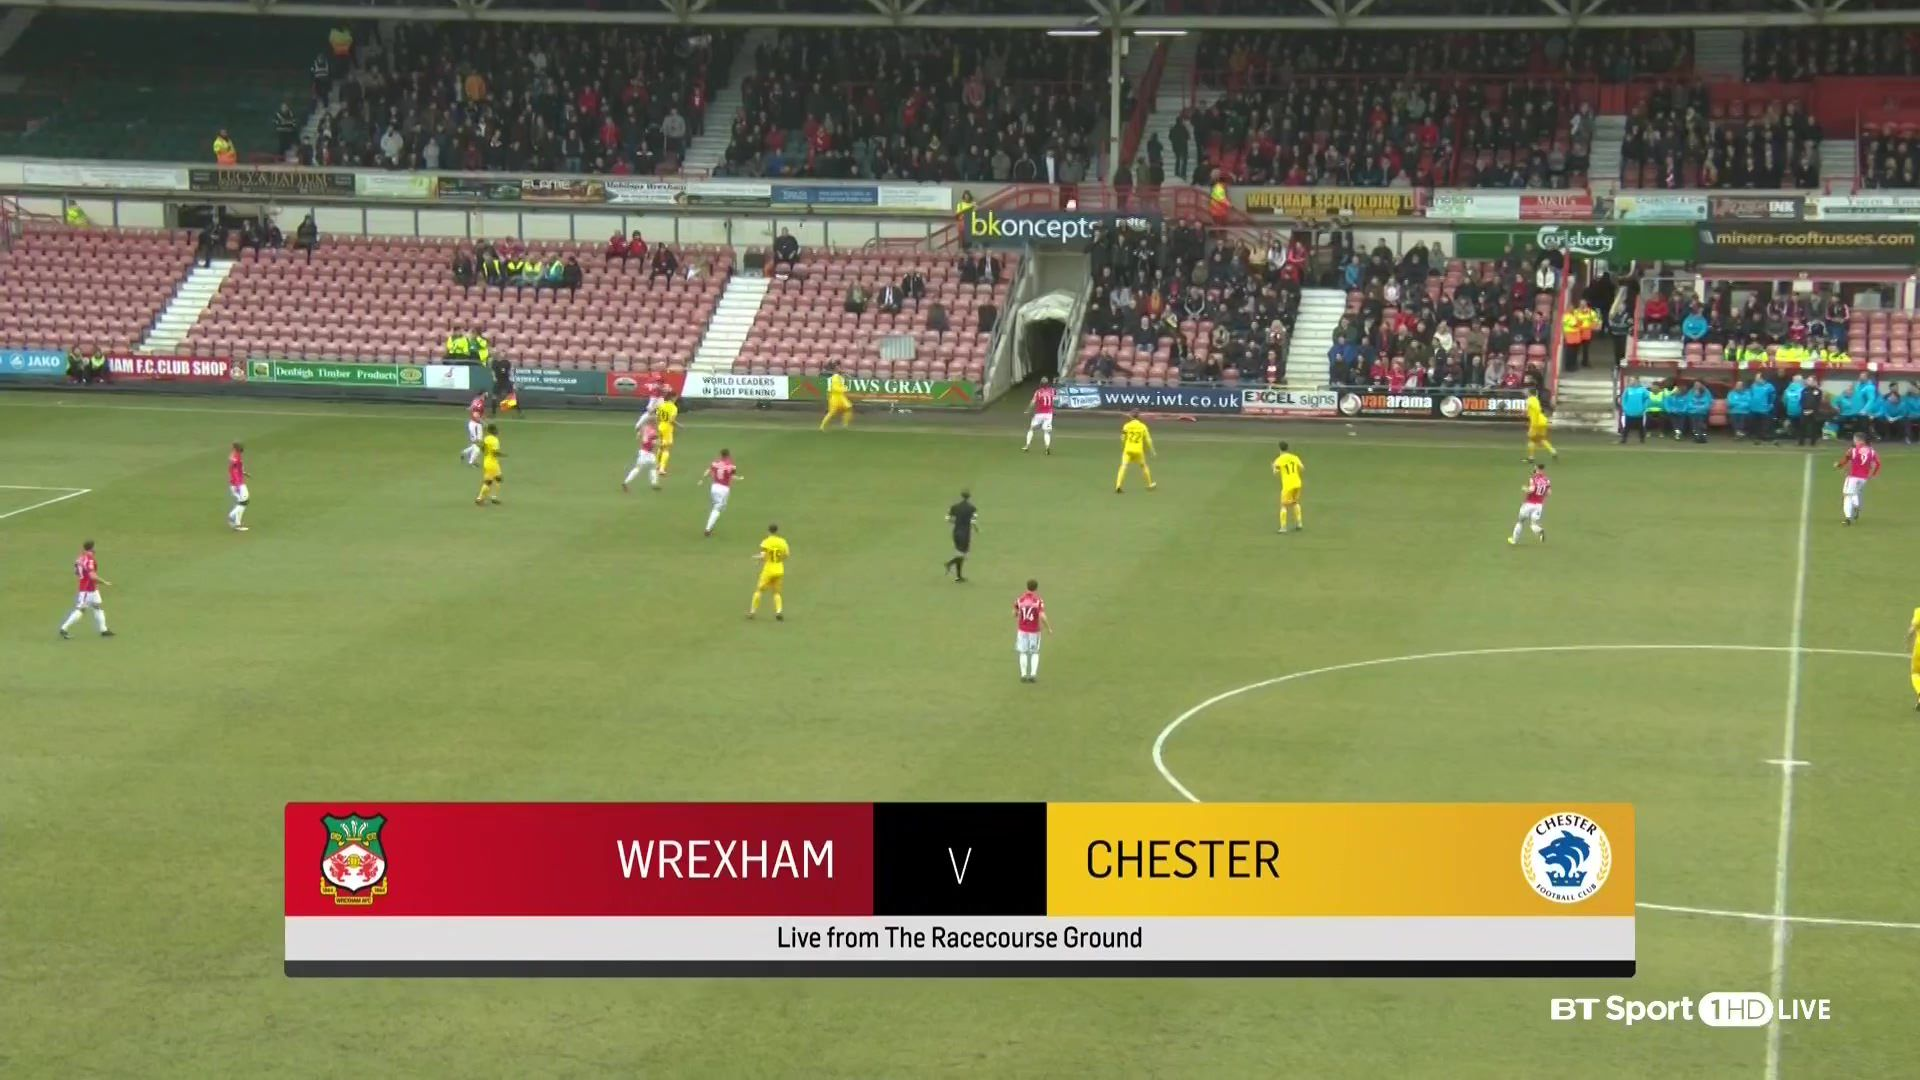 Pin on goals Vanarama National League Wrexham vs